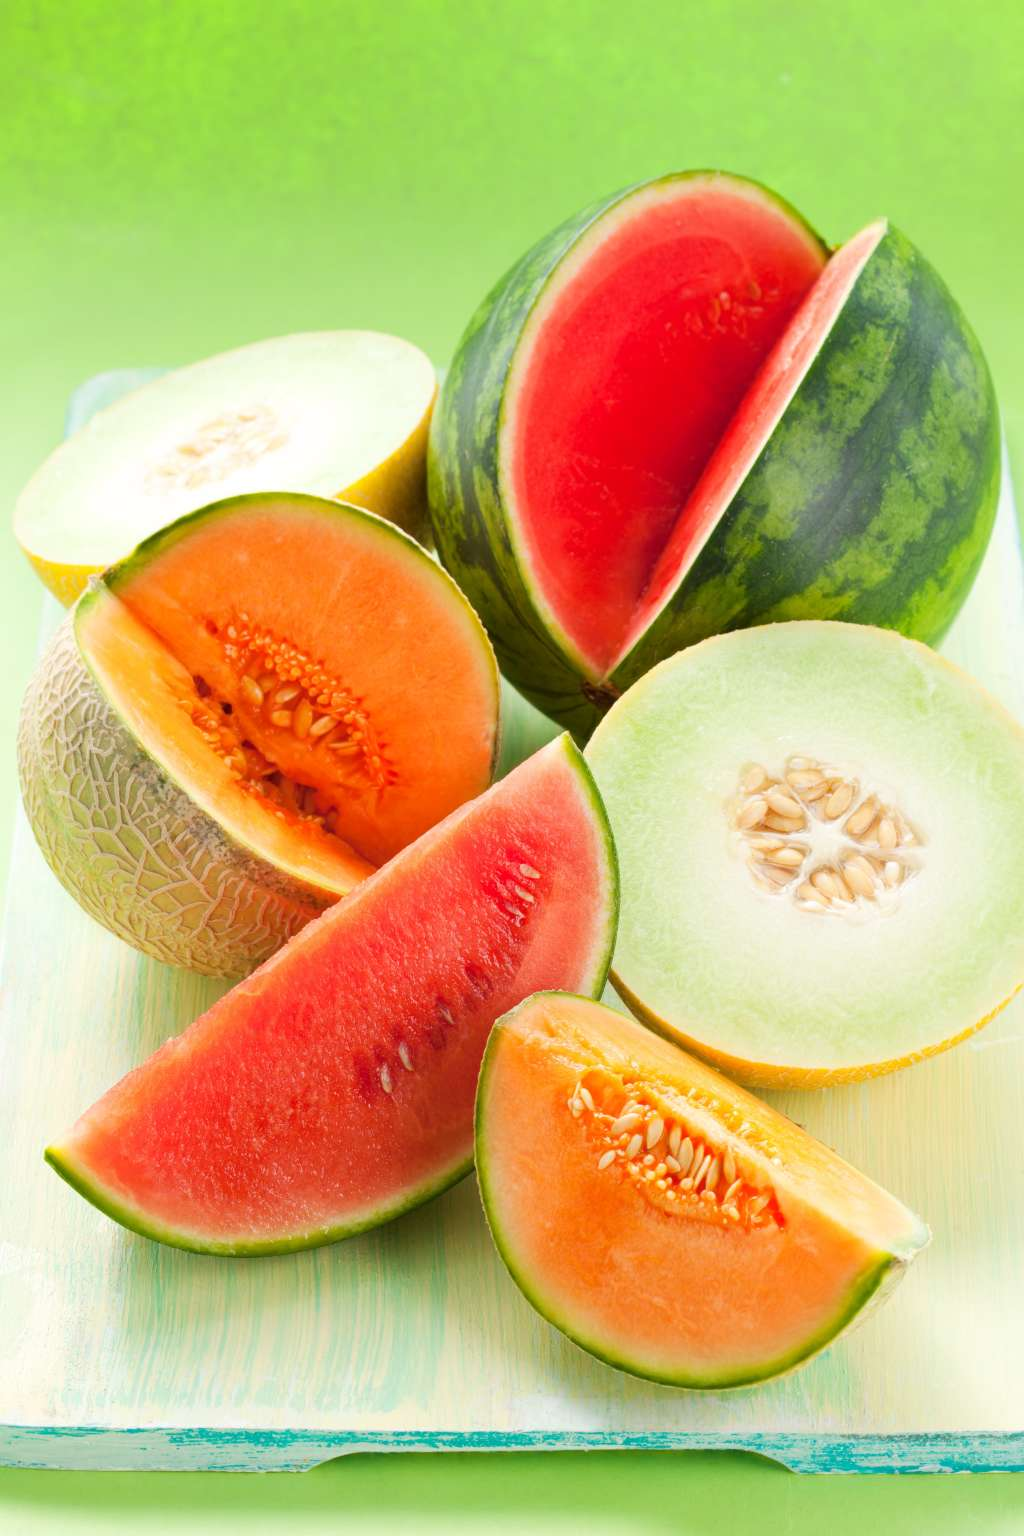 5 Tips for Picking a Perfect Melon